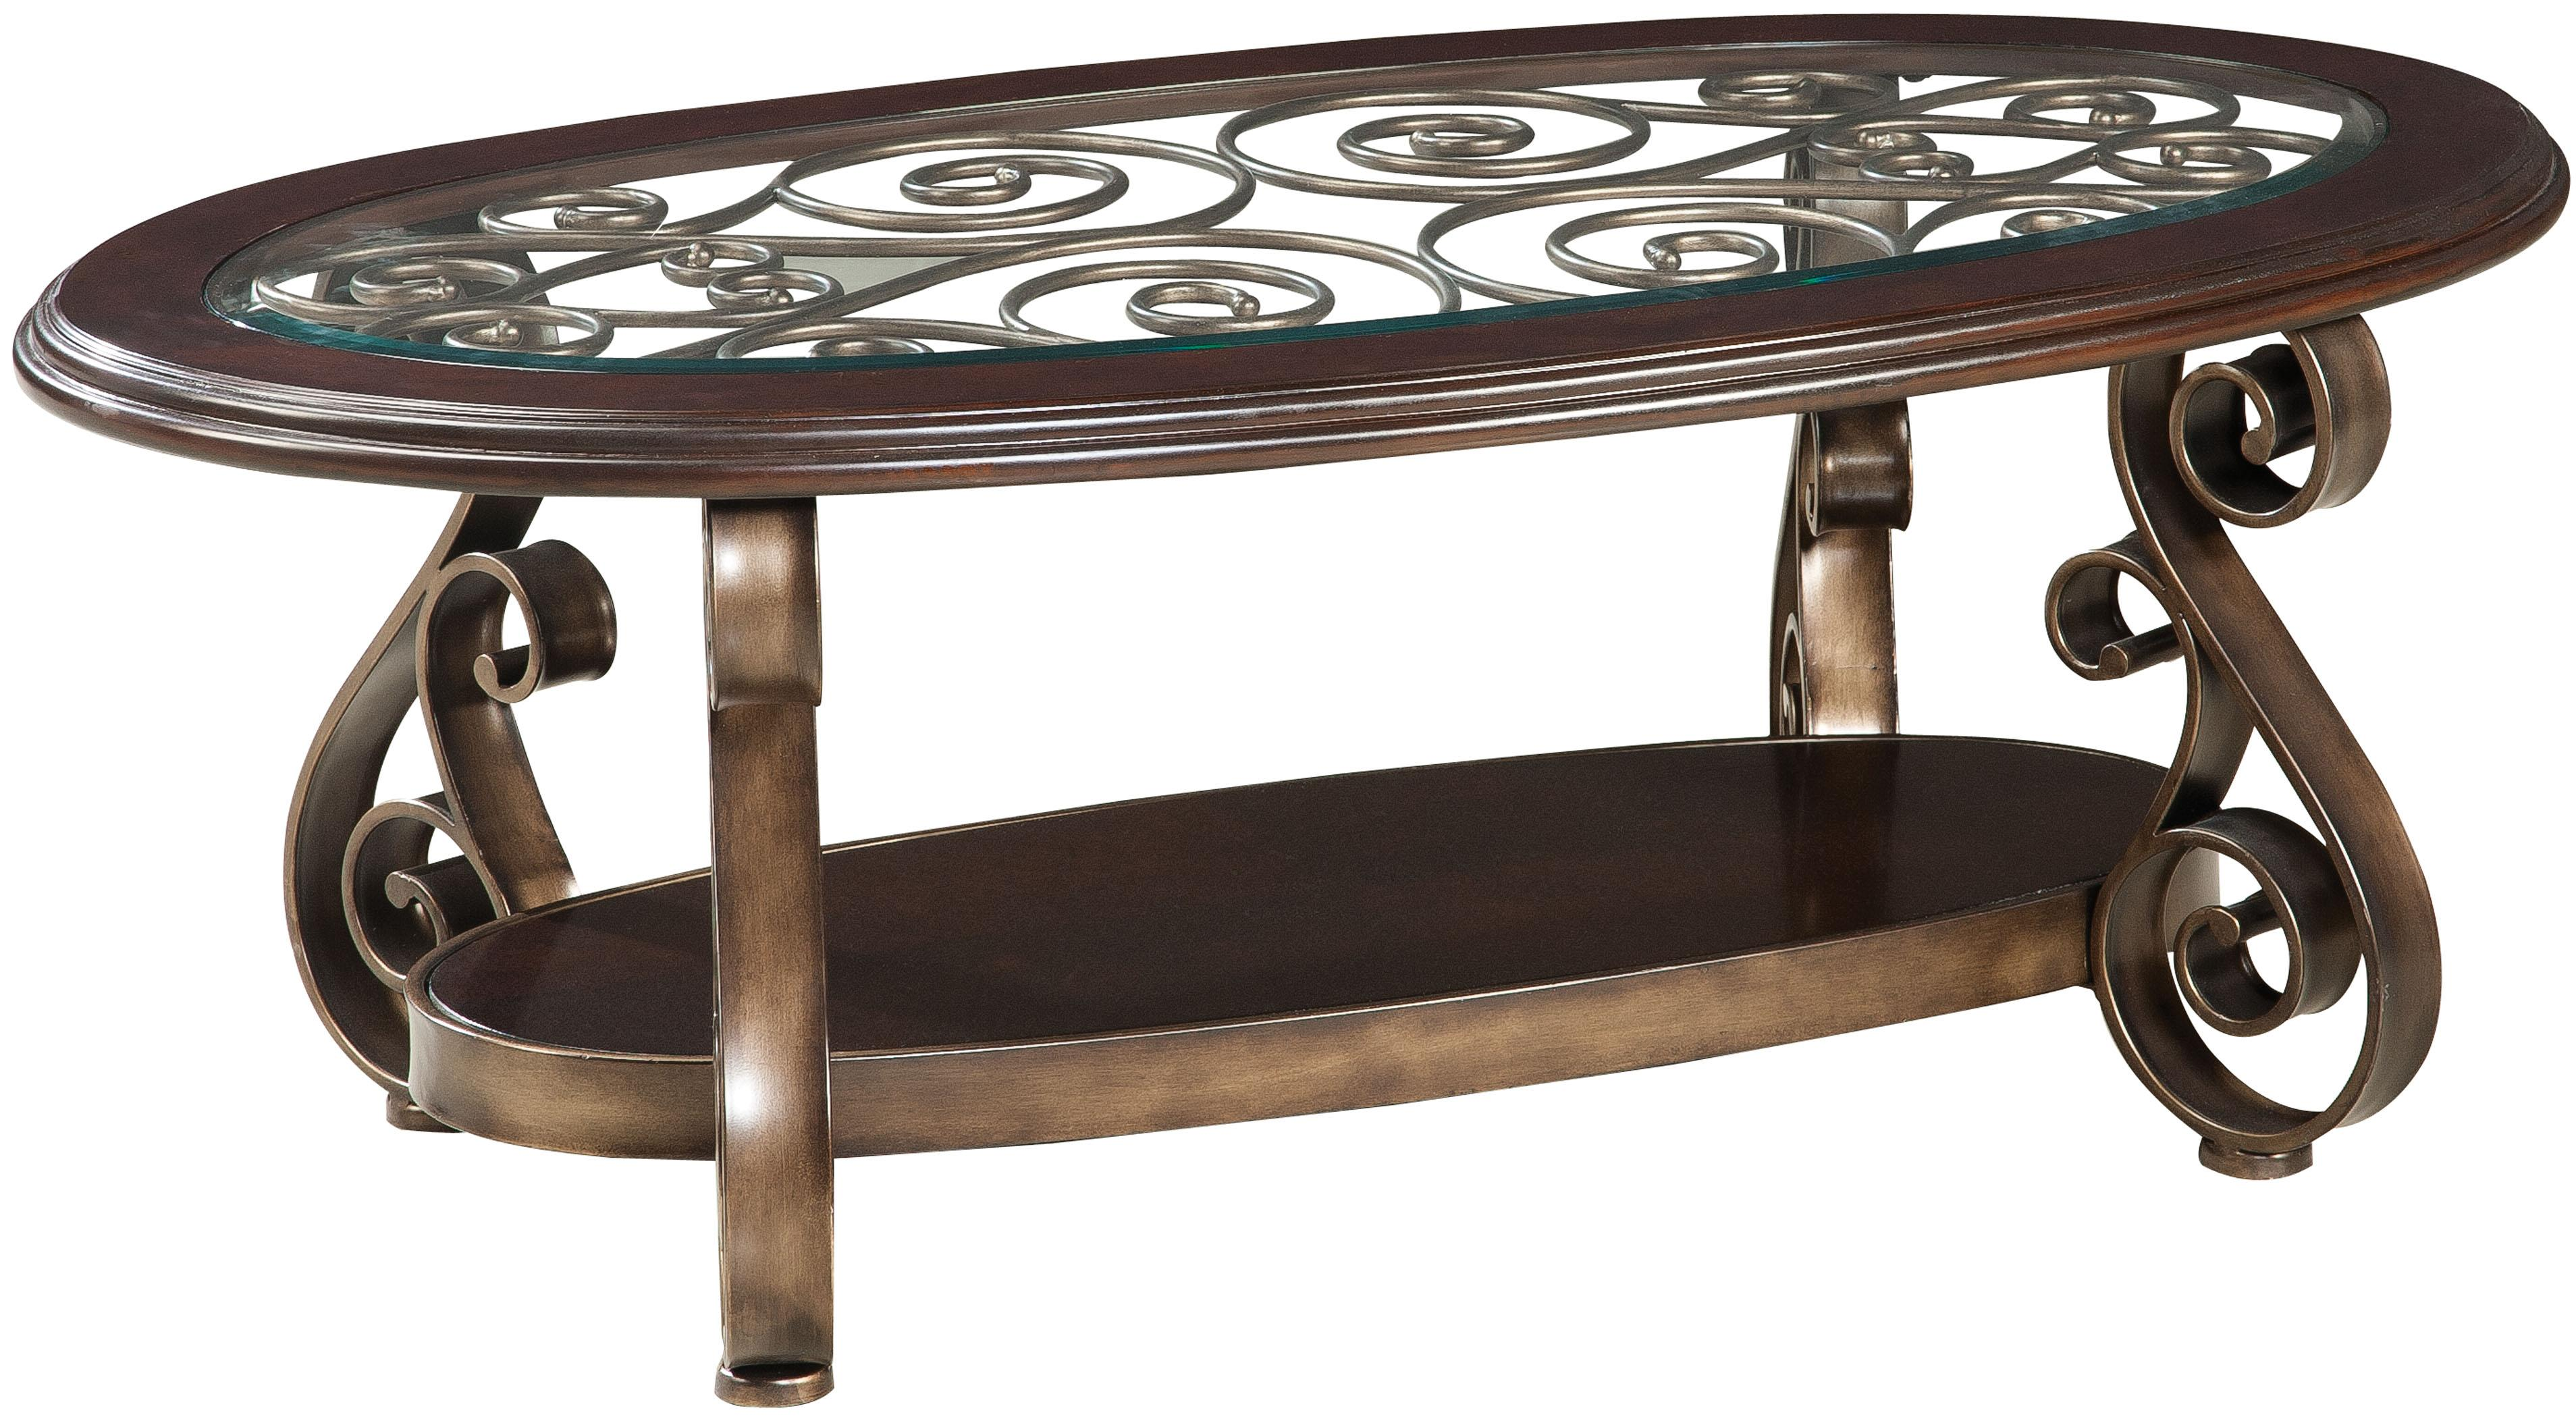 Old World Cocktail Table With Glass Top And S Scroll Legs By Standard Furniture Wolf And